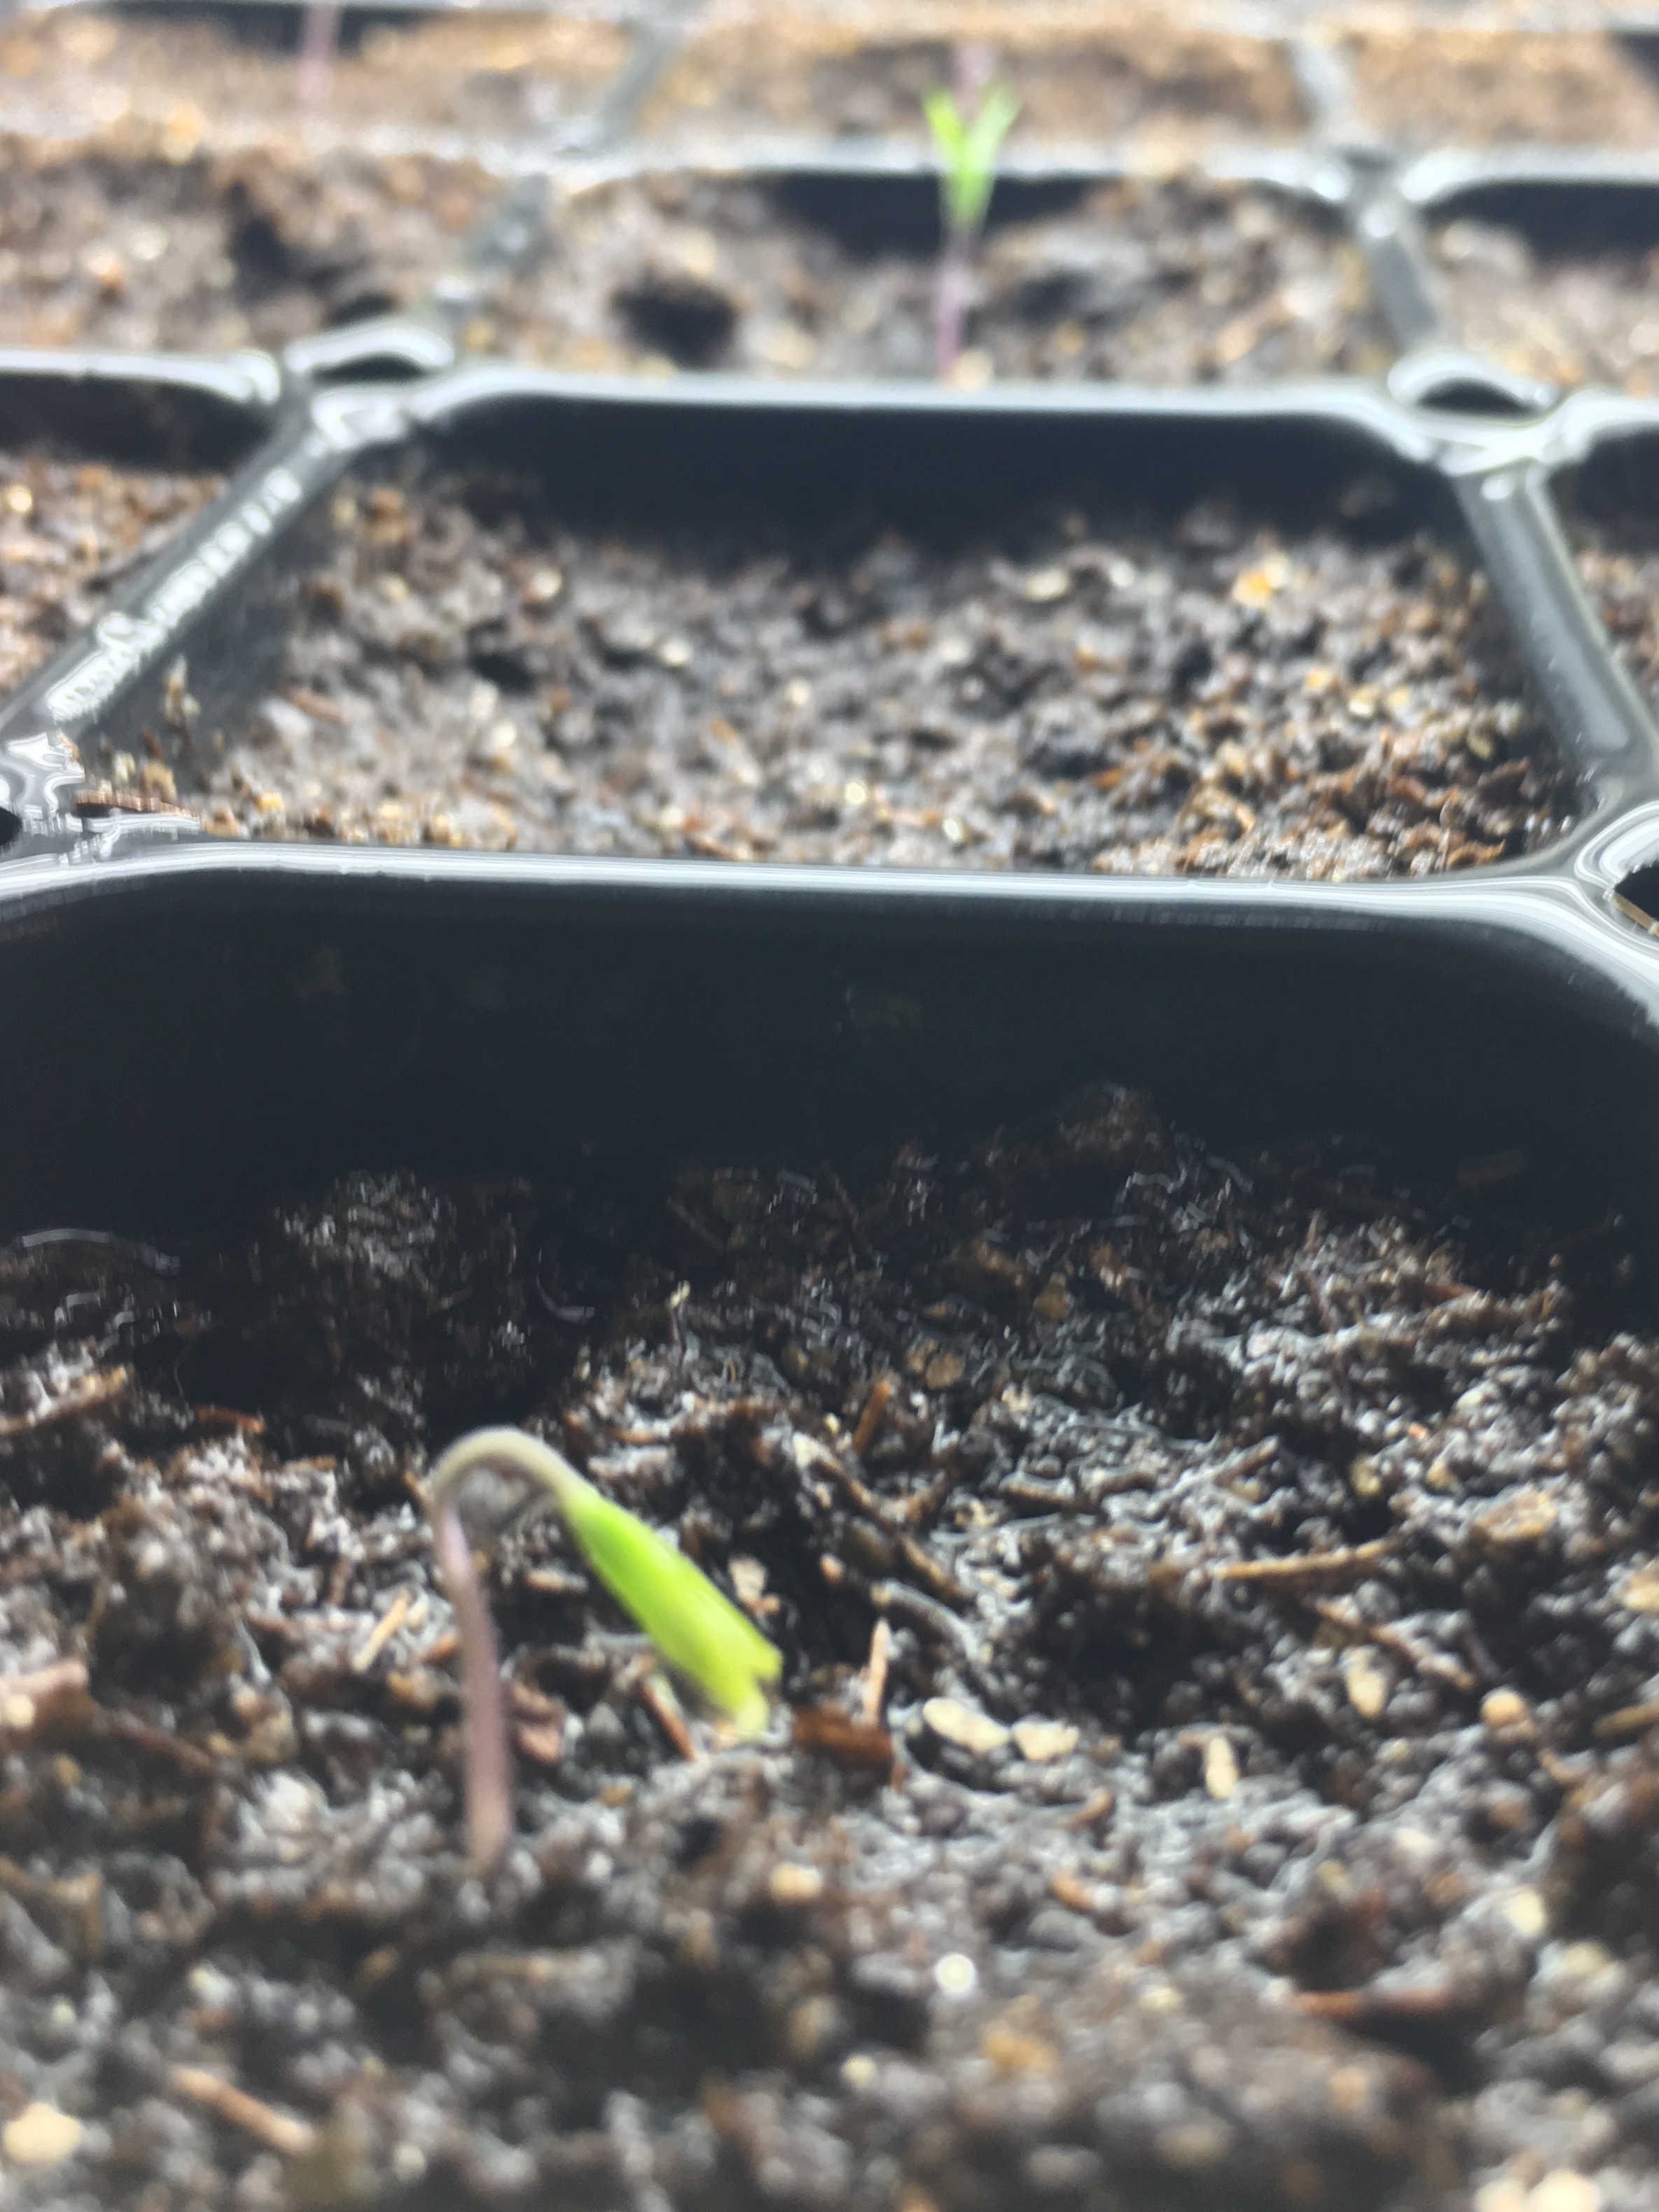 Berkeley Tie-Dye tomatoes germinating